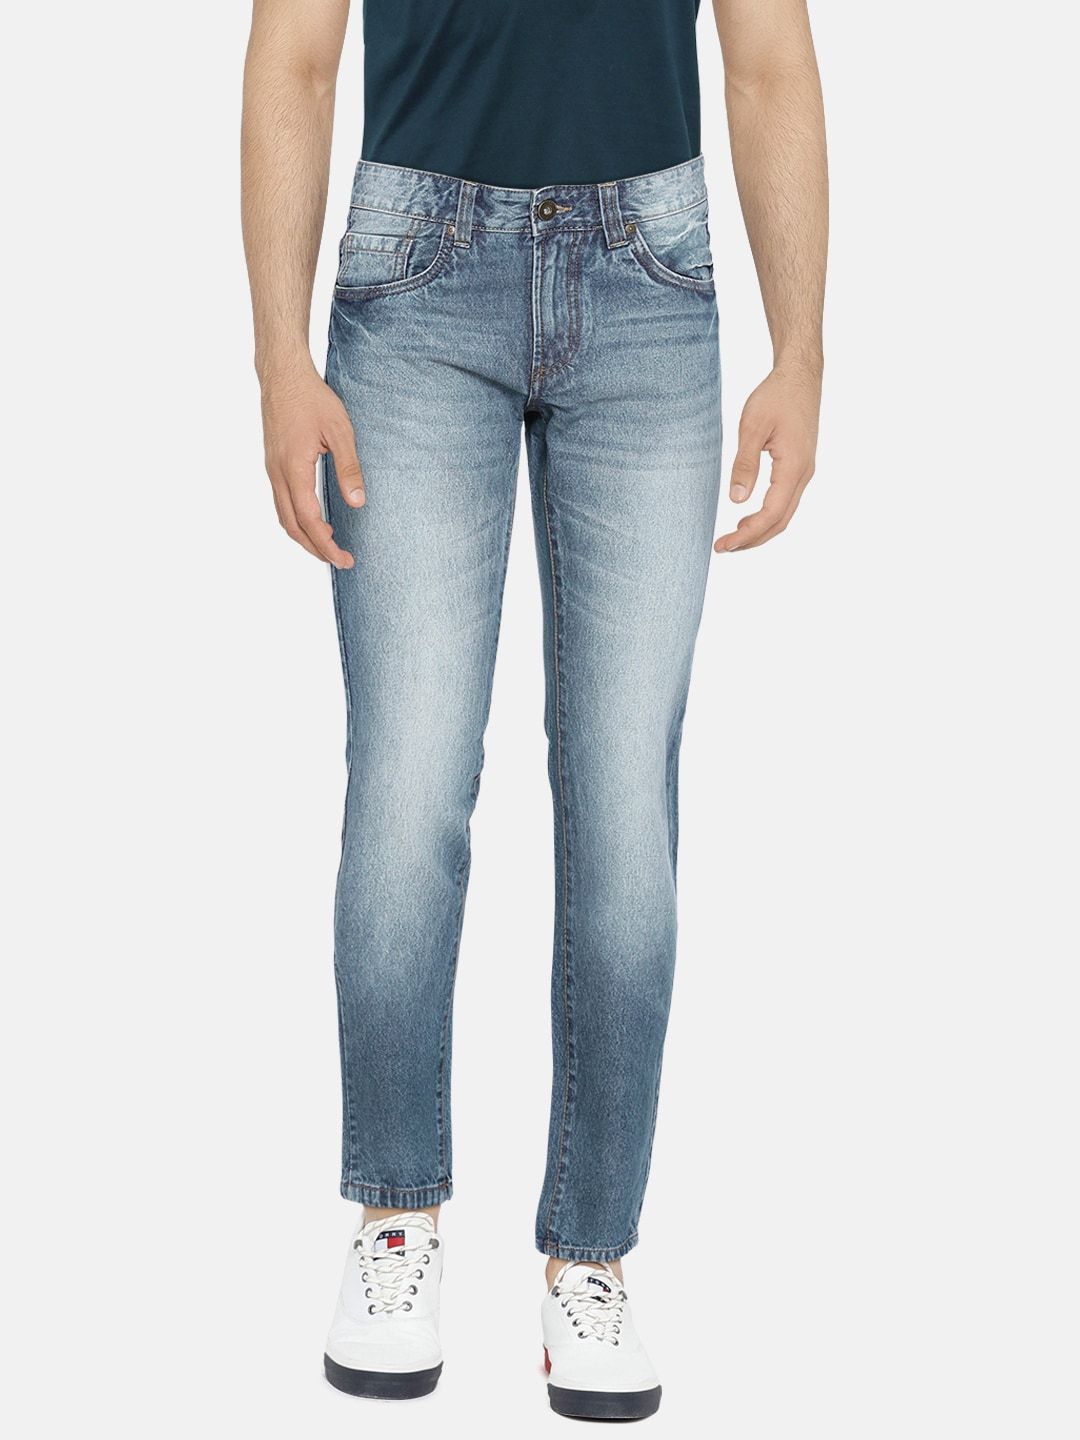 519368348b4 Men Jeans - Buy Jeans for Men in India at best prices